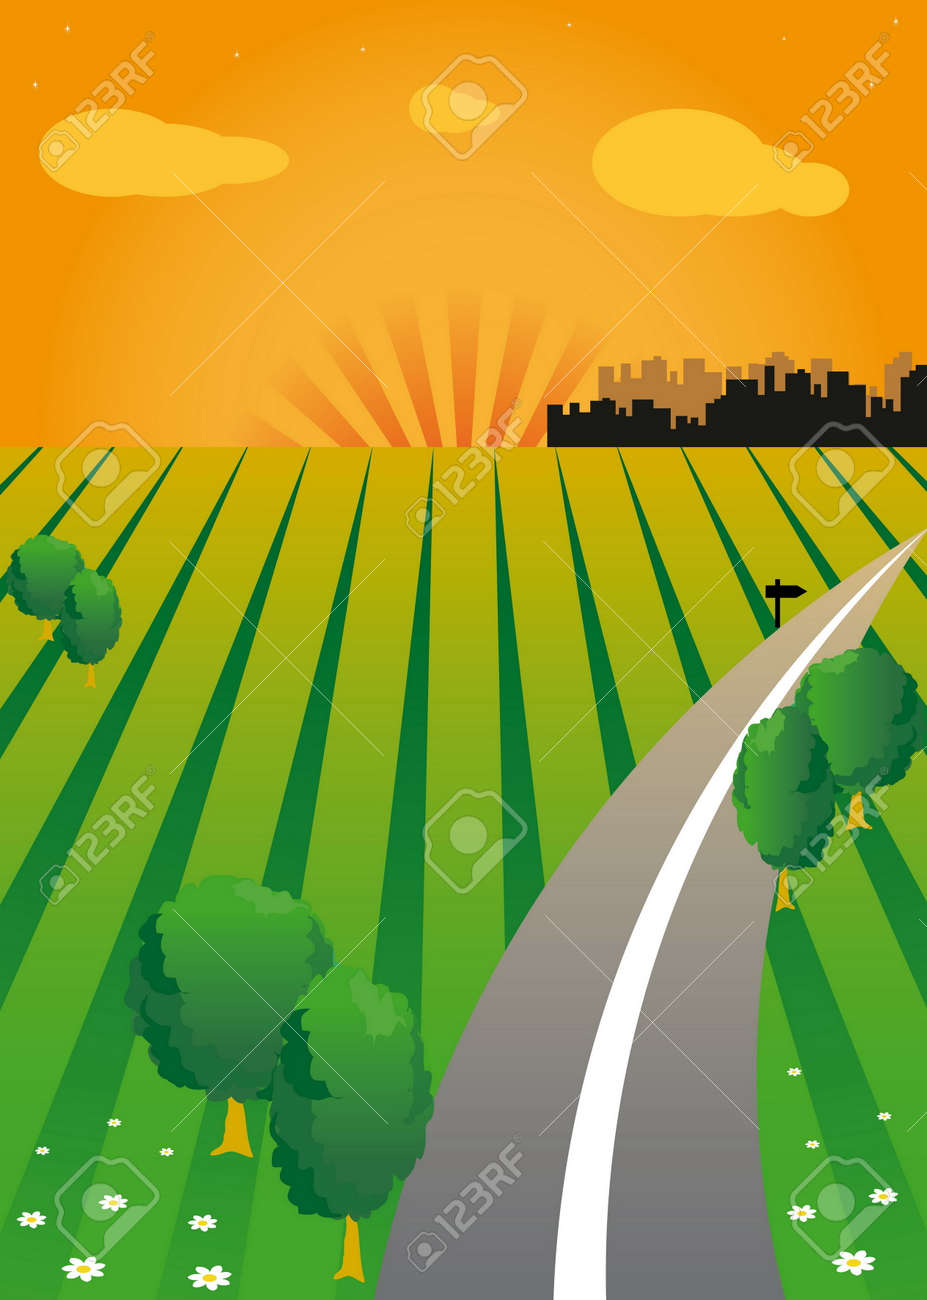 sunset and the green valley. Road. The contours of the city on the horizon. Stock Vector - 6485408